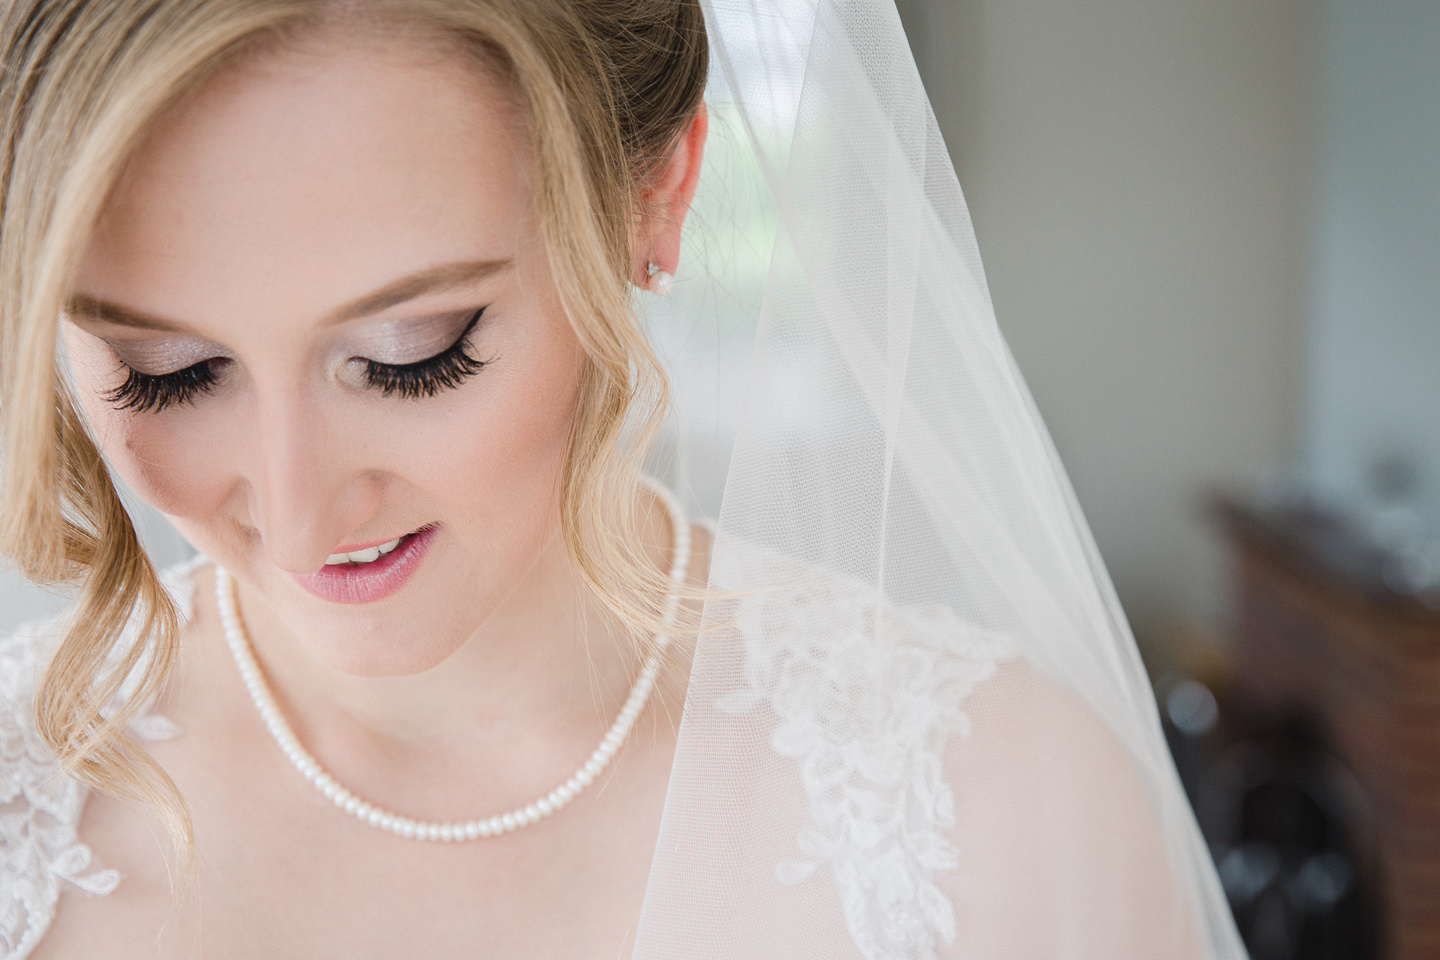 Bridal makeup with false eyelashes